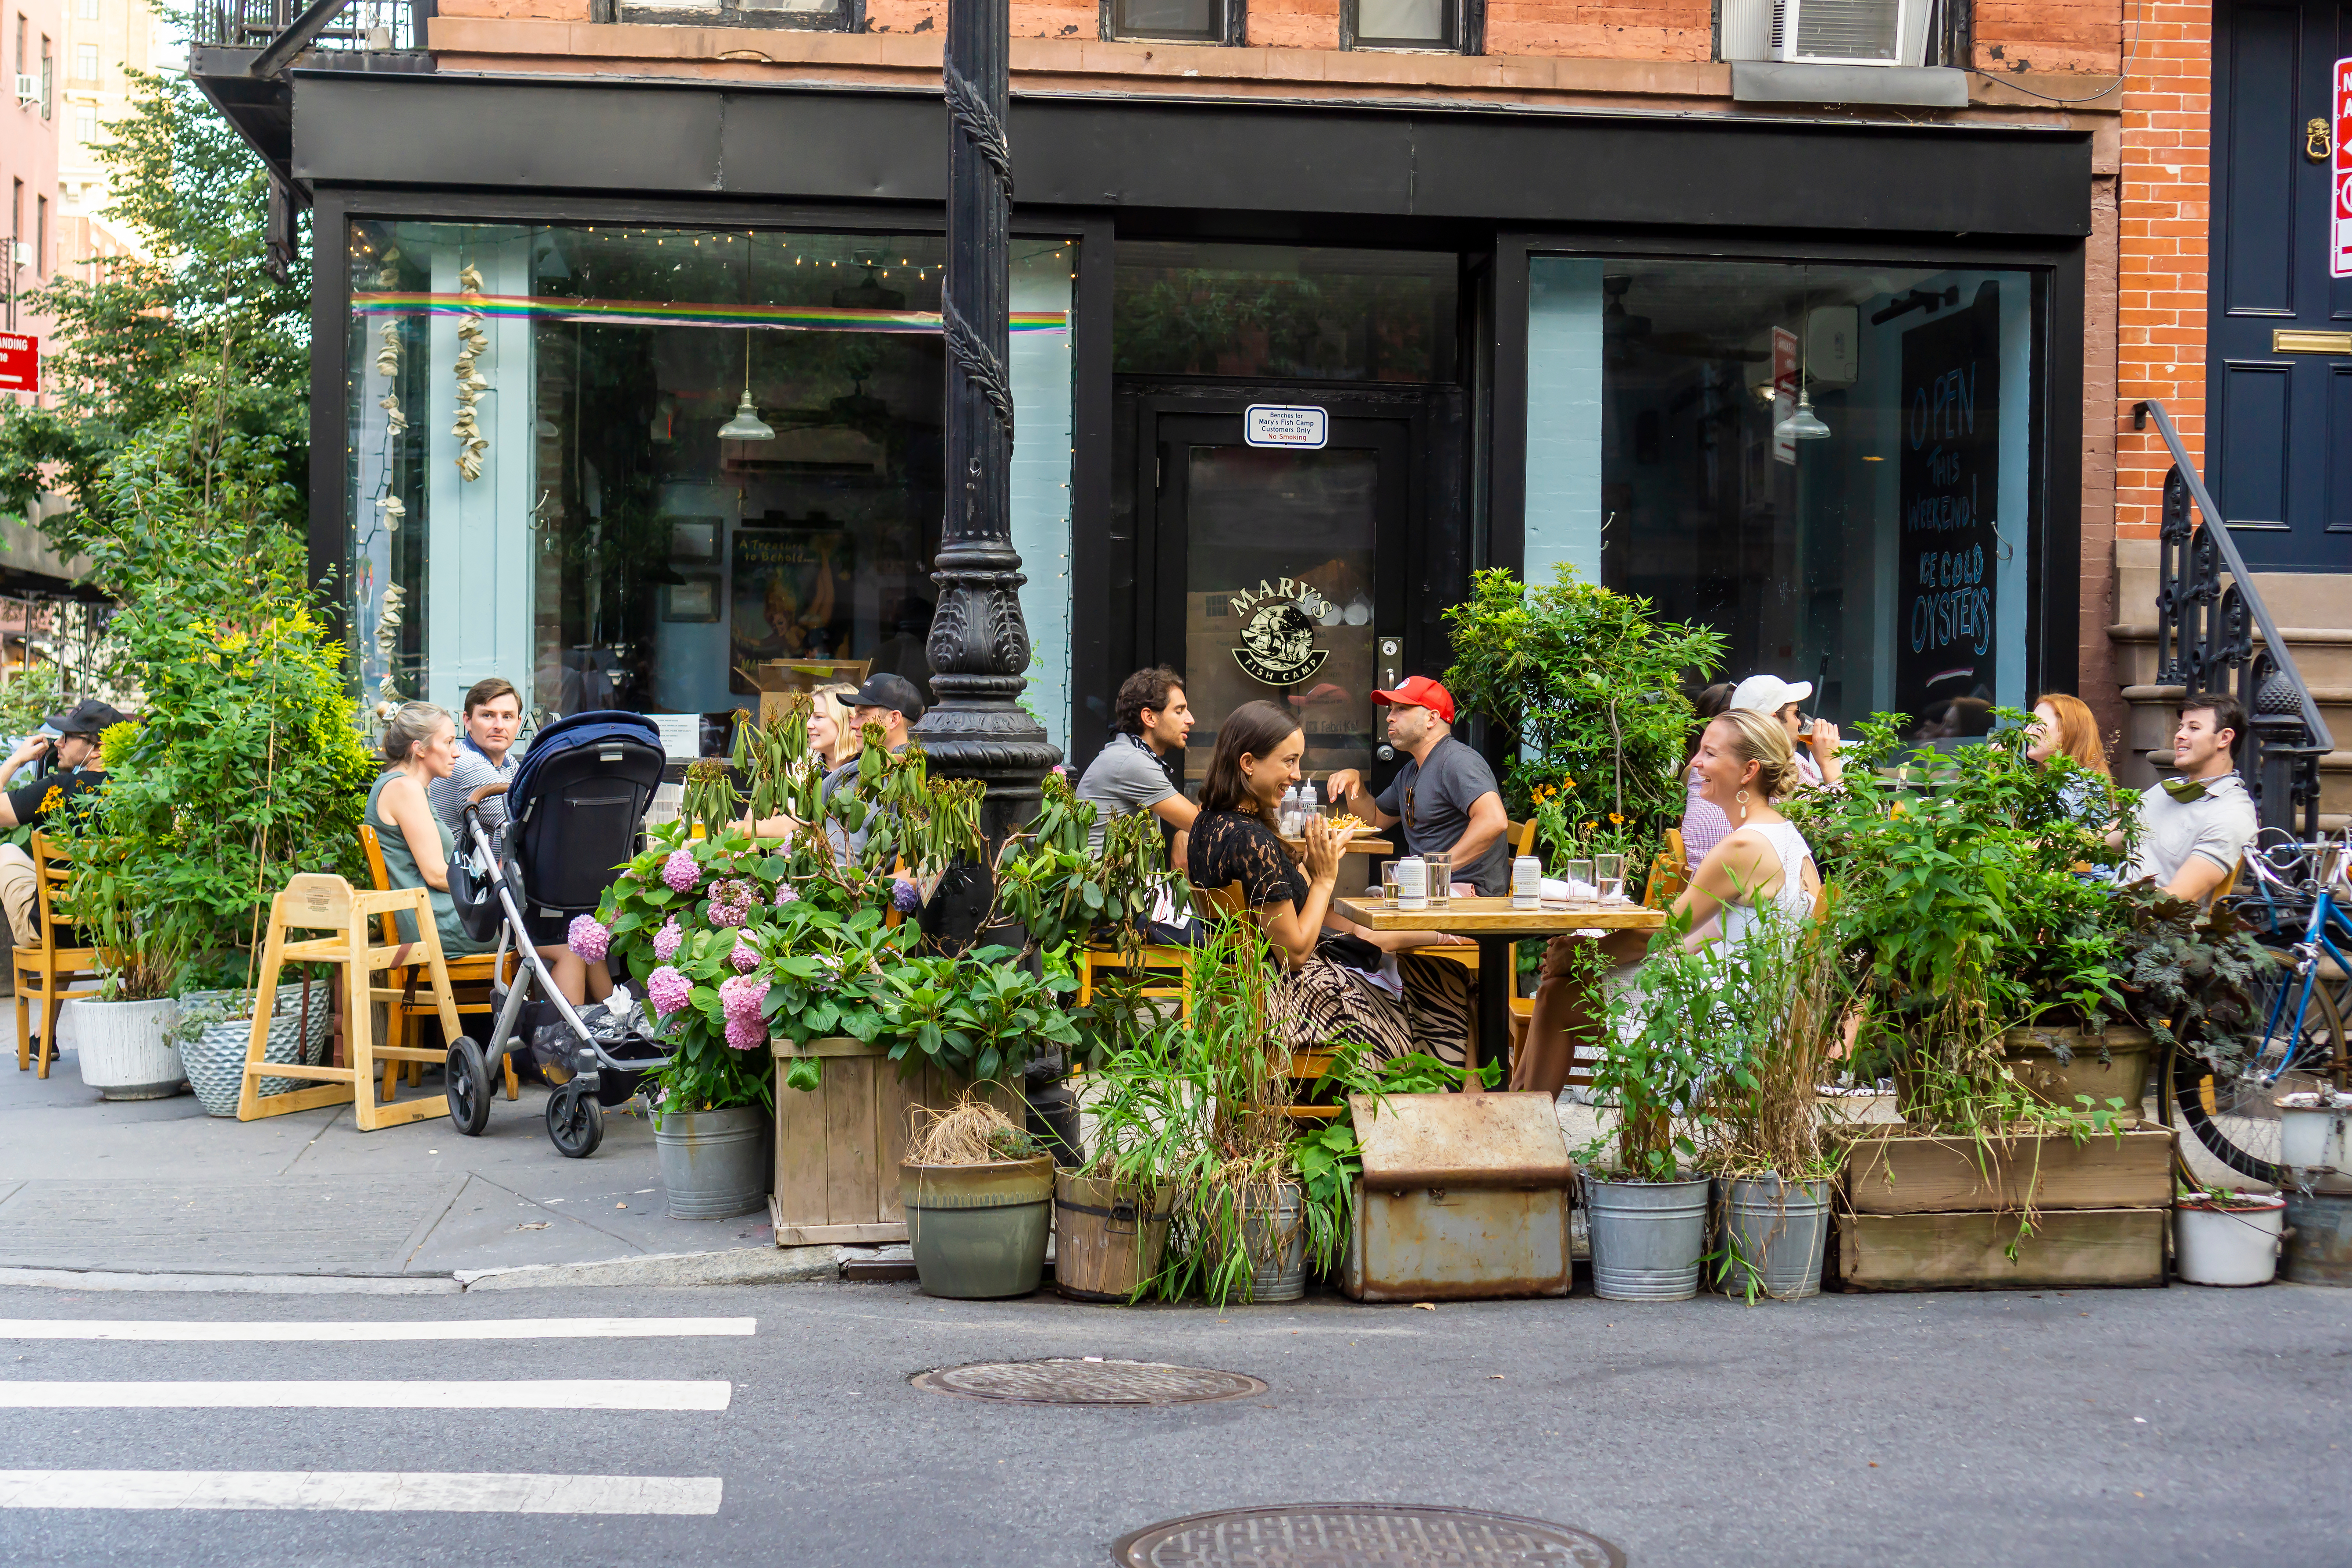 An outdoor dining set up on the street, featuring multiple tables of people surrounded by potted plants